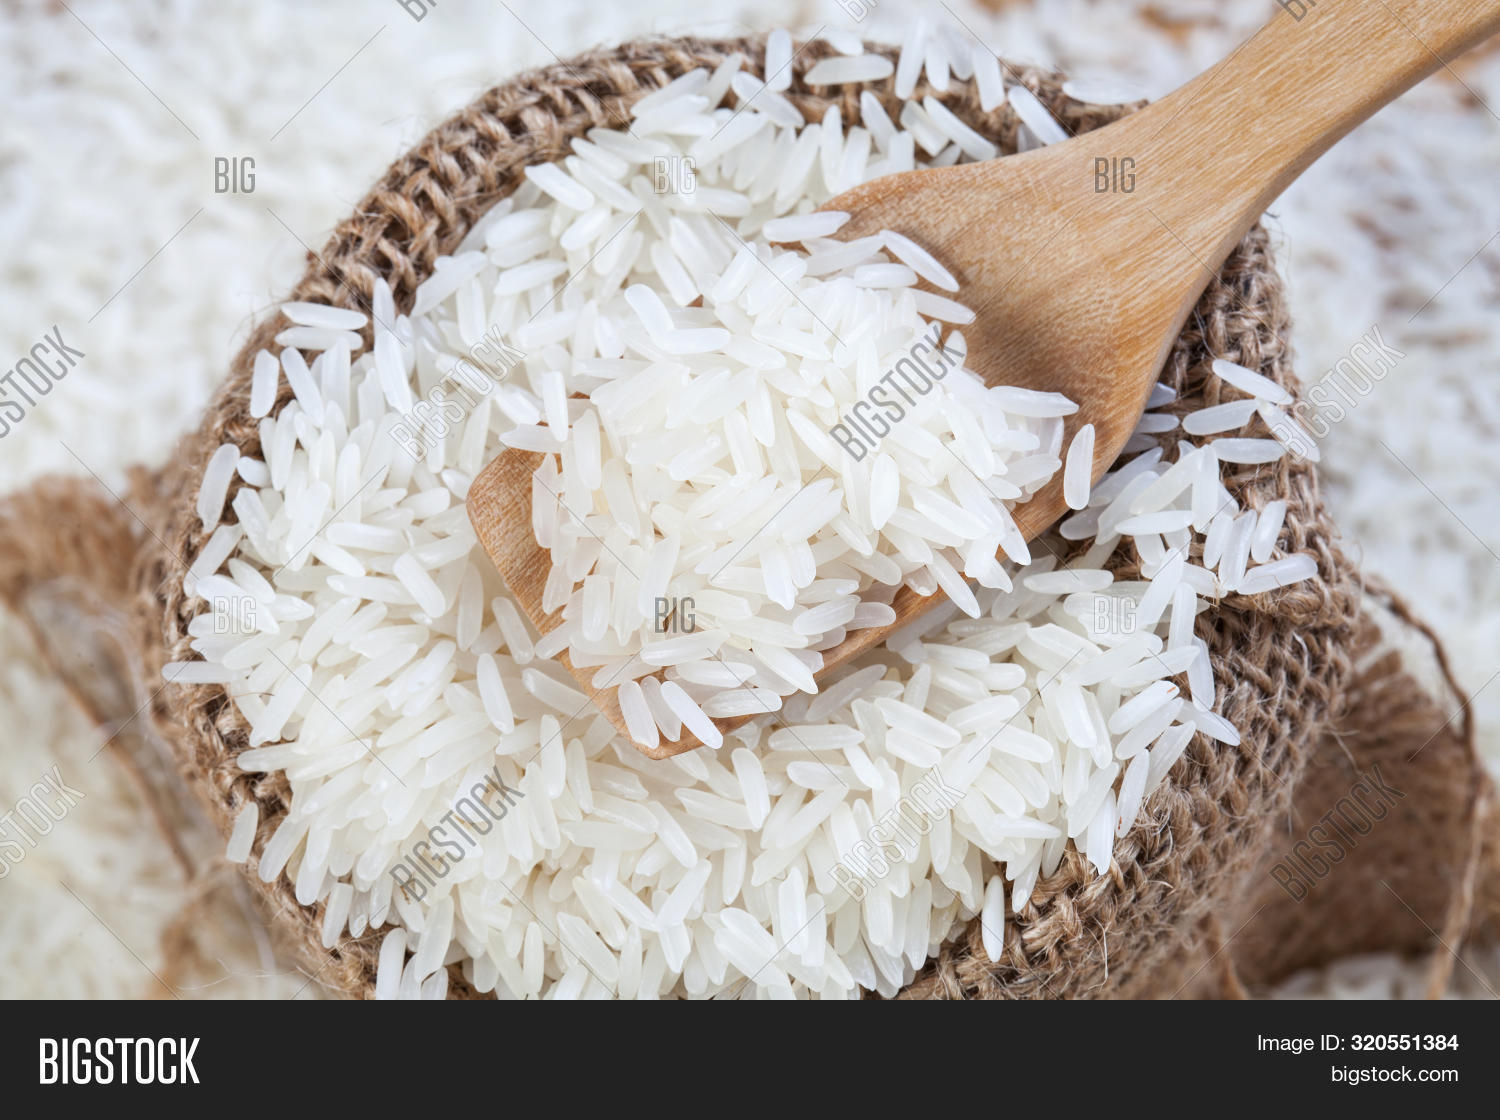 Close Up The Rice On Wood Spoon Put On The Rice Sack With Blurry Of Pile Rice